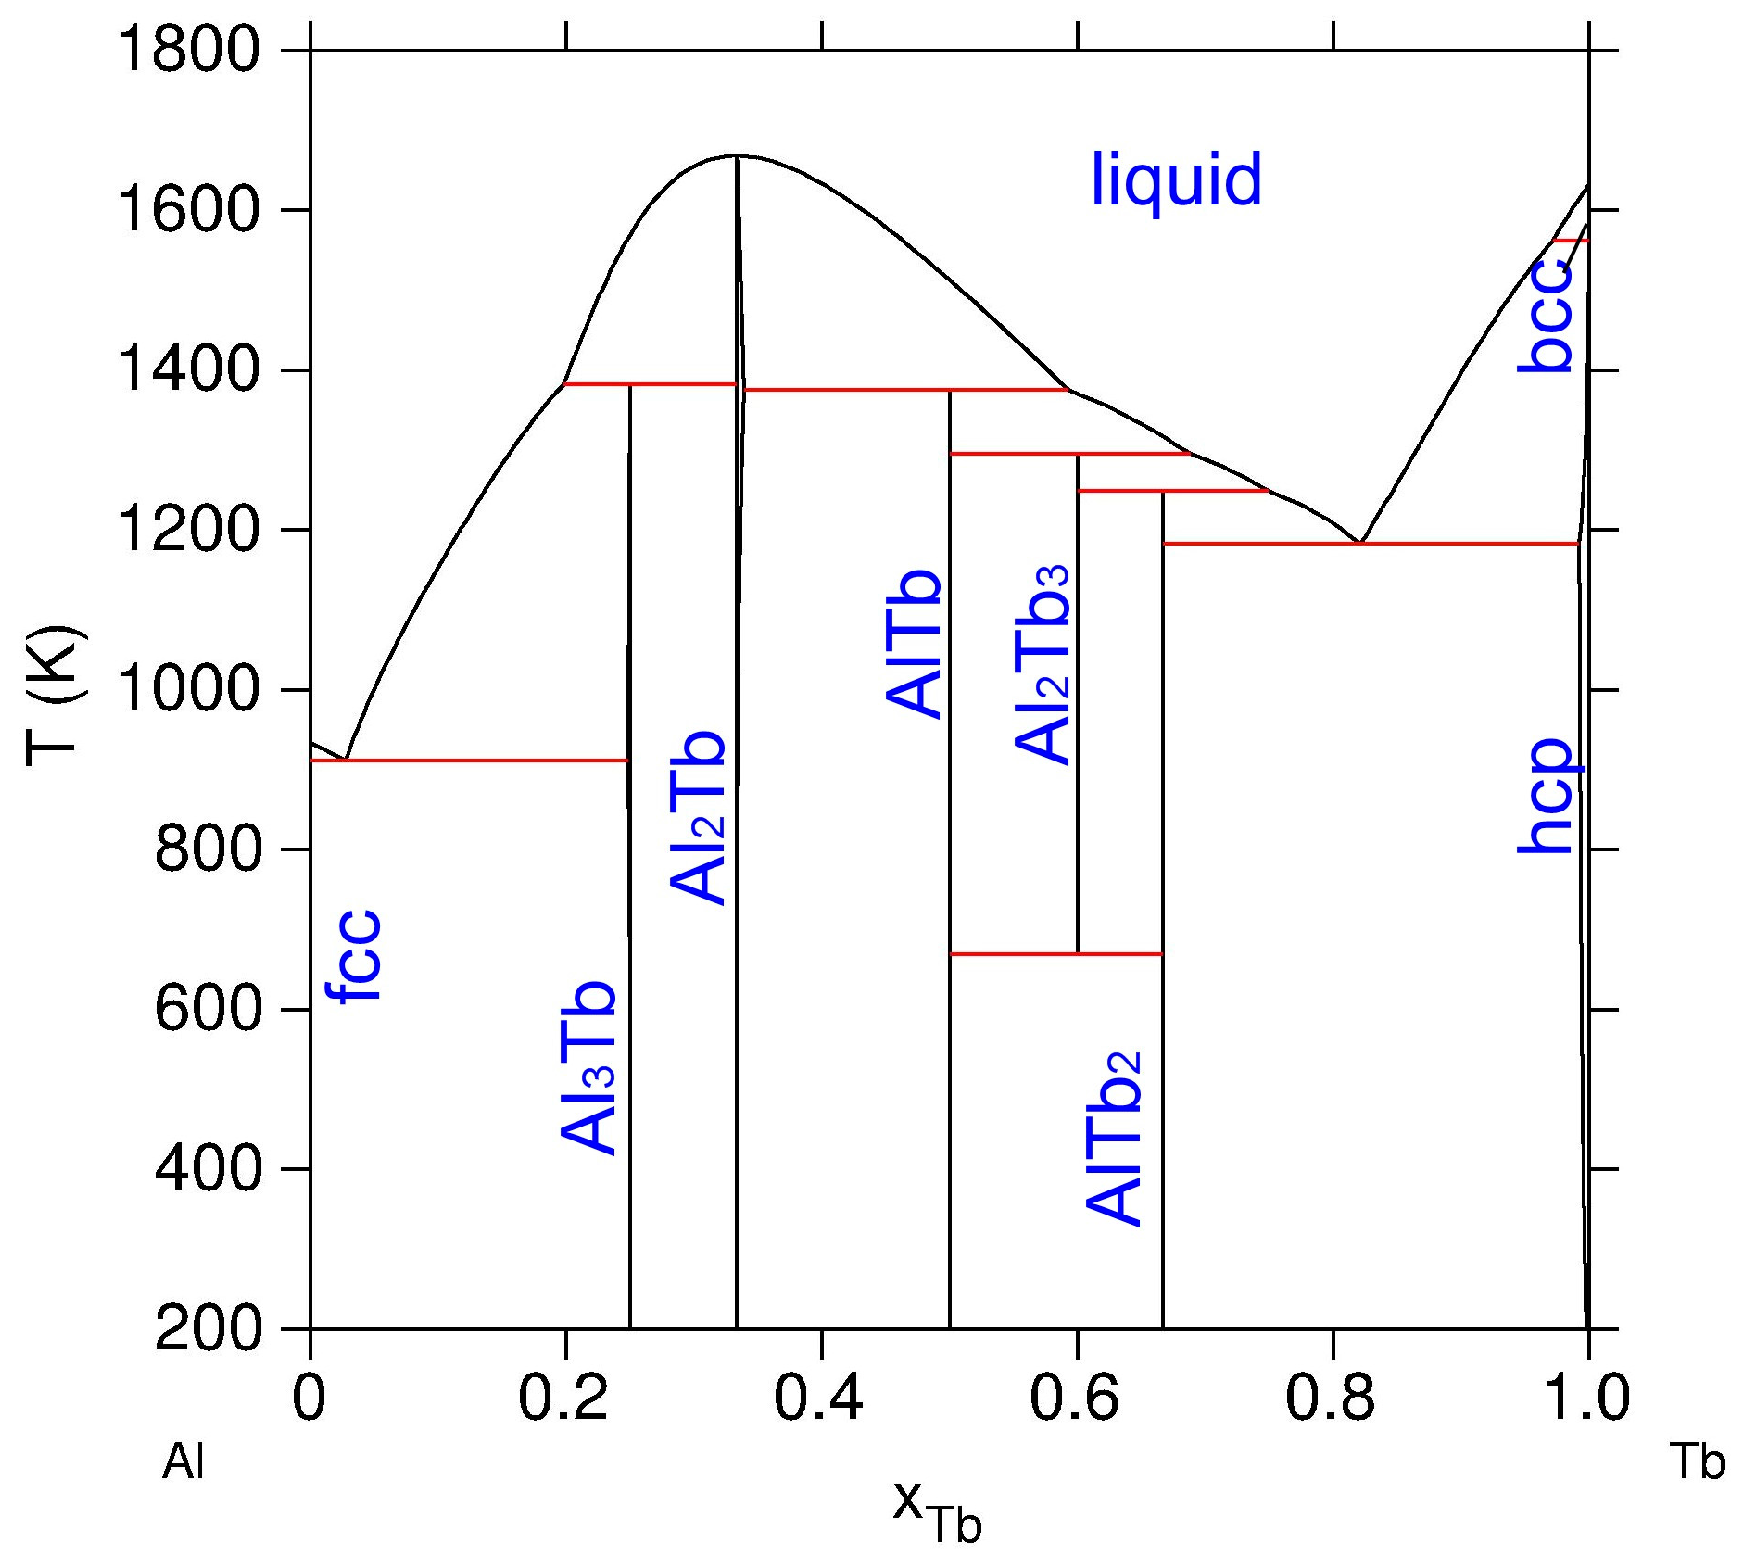 Entropy | Free Full-Text | Enthalpy of Mixing in Al–Tb Liquid